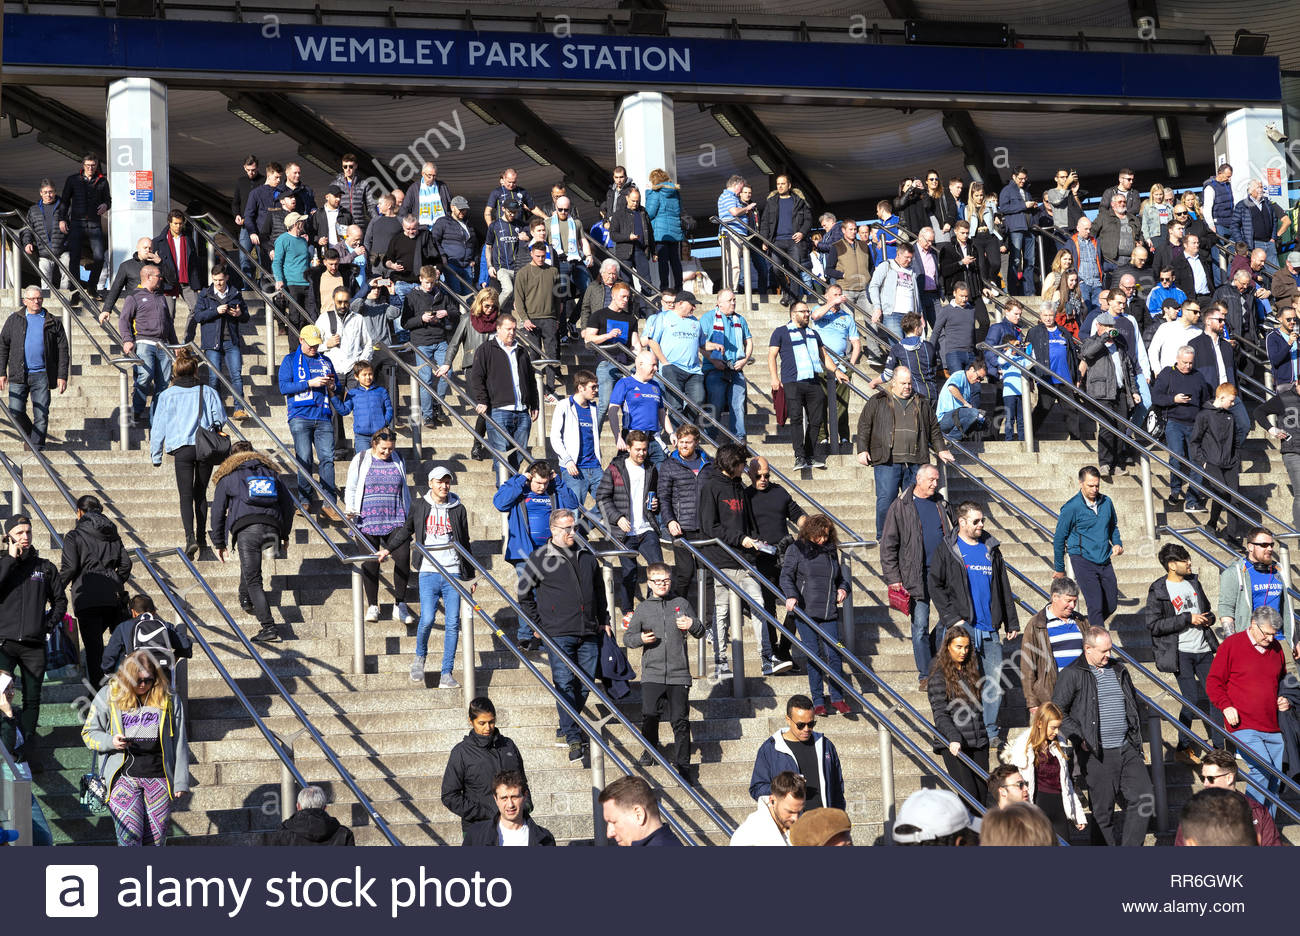 24 Feb 2019 - London, England. Busy Wembley Park station during Carabao Cup finals between Manchester City and Chelsea football clubs. - Stock Image